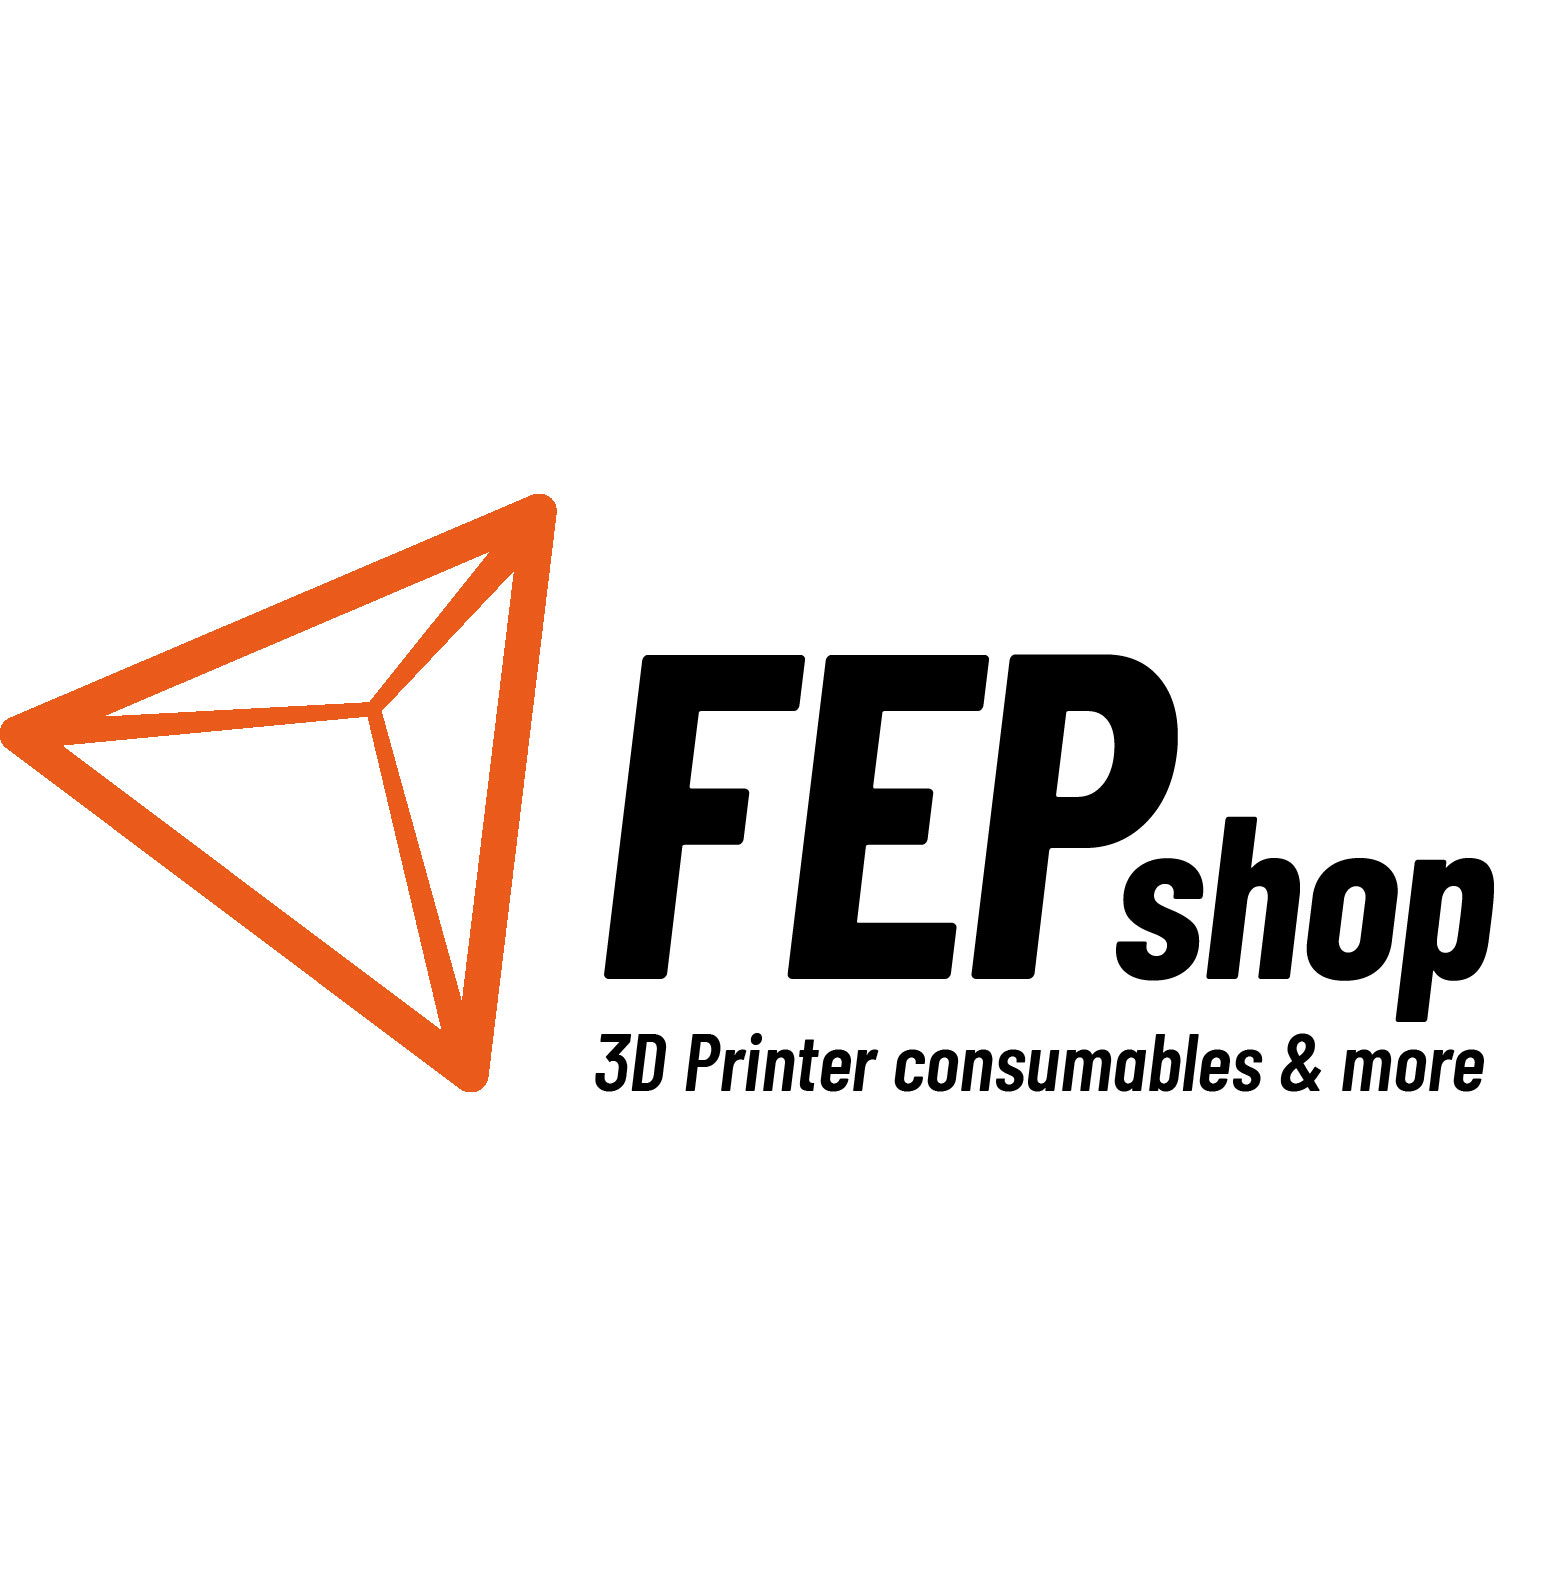 FEPshop – Functional Resin – Rubber Mold